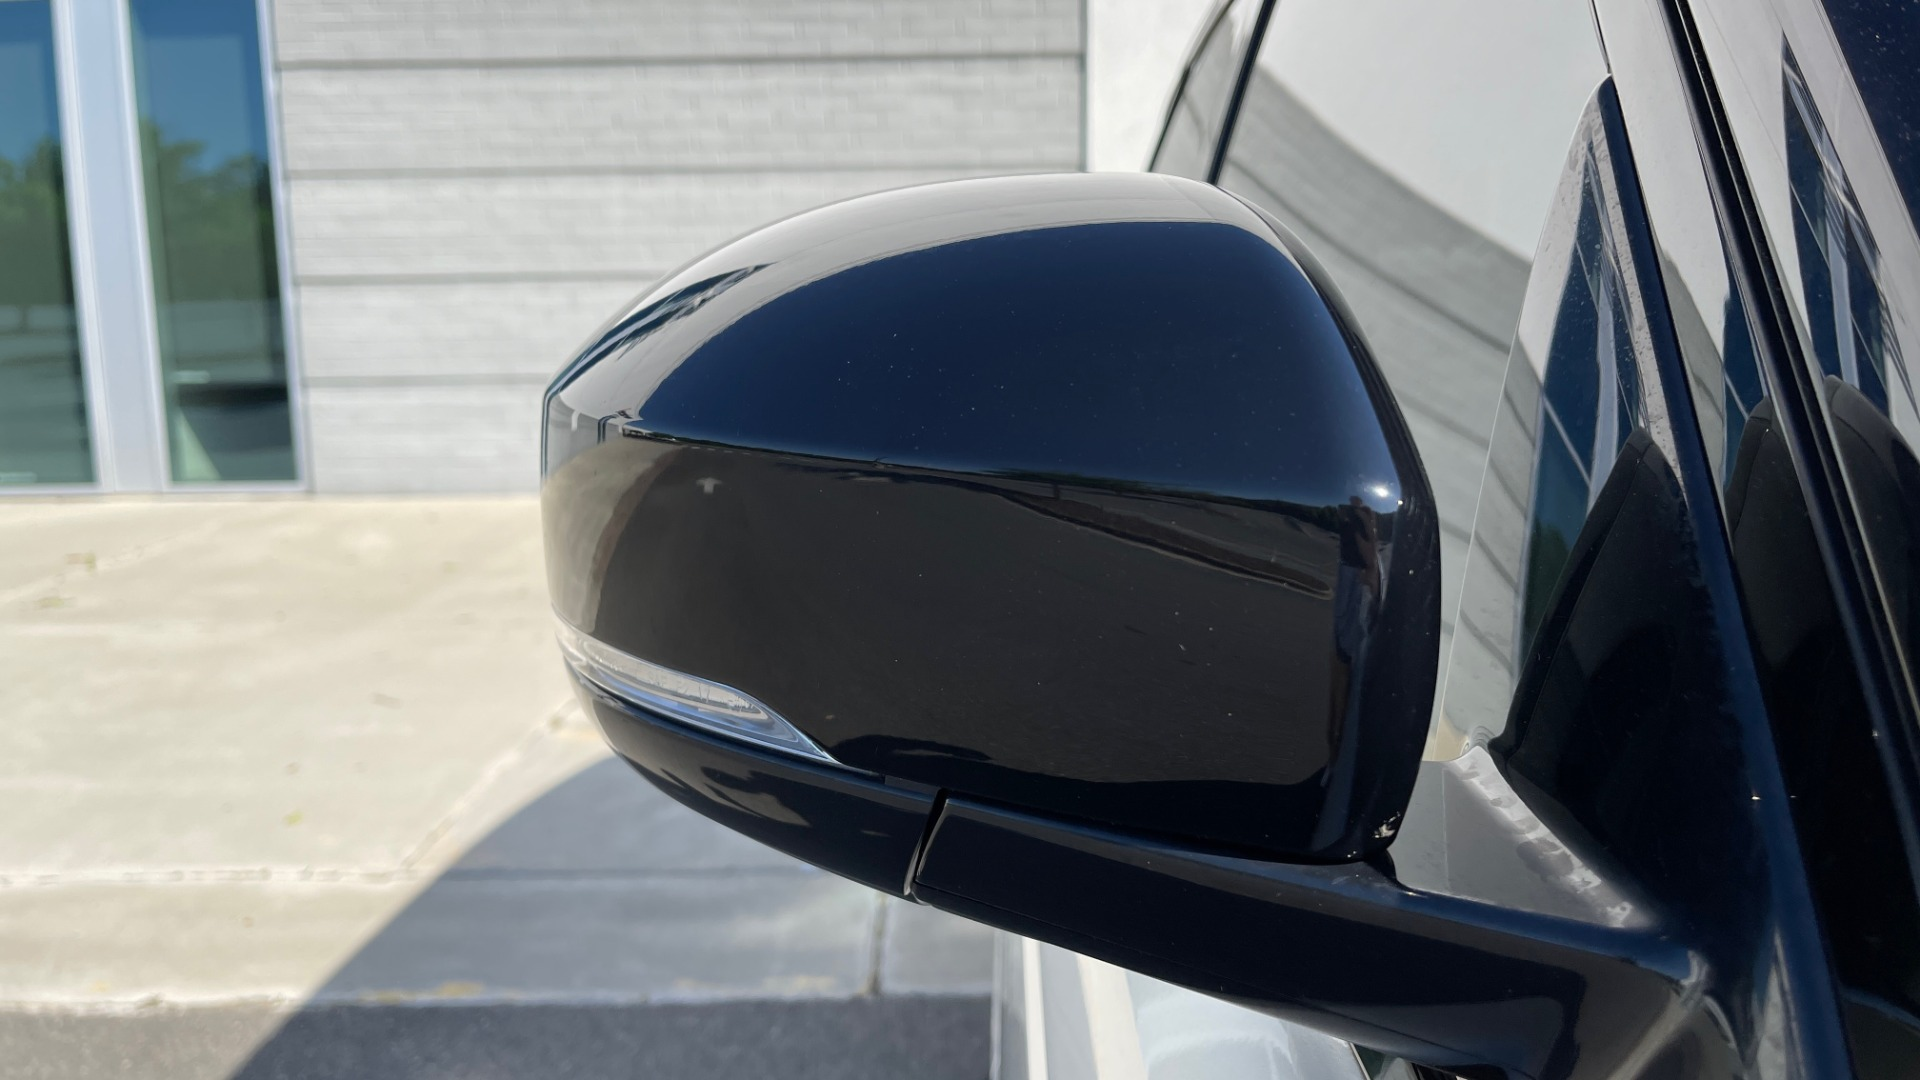 Used 2019 Land Rover RANGE ROVER SPORT HSE DYNAMIC / 3.0L SC V6 / 8-SPD / APPLE / NAV / SUNROOF / REARVIEW for sale Sold at Formula Imports in Charlotte NC 28227 22